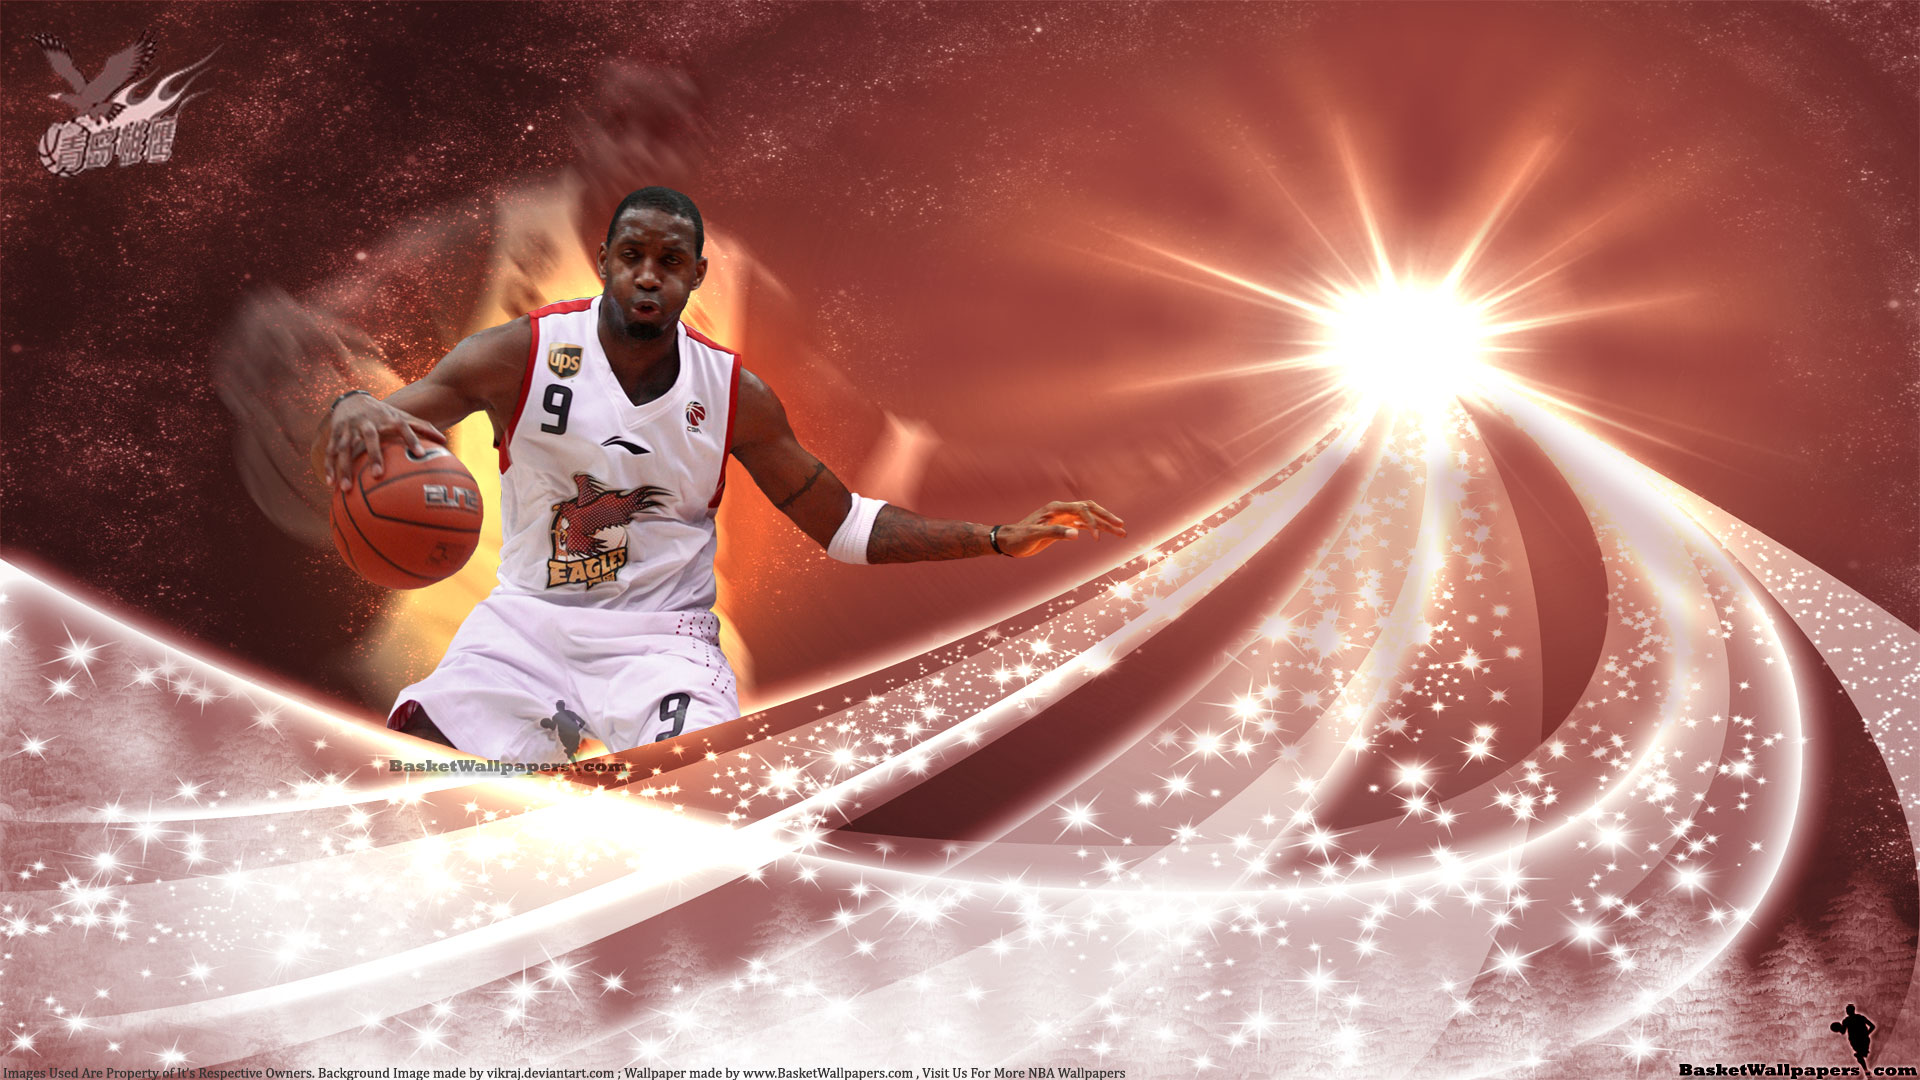 tracy mcgrady wallpaper desktop - photo #13